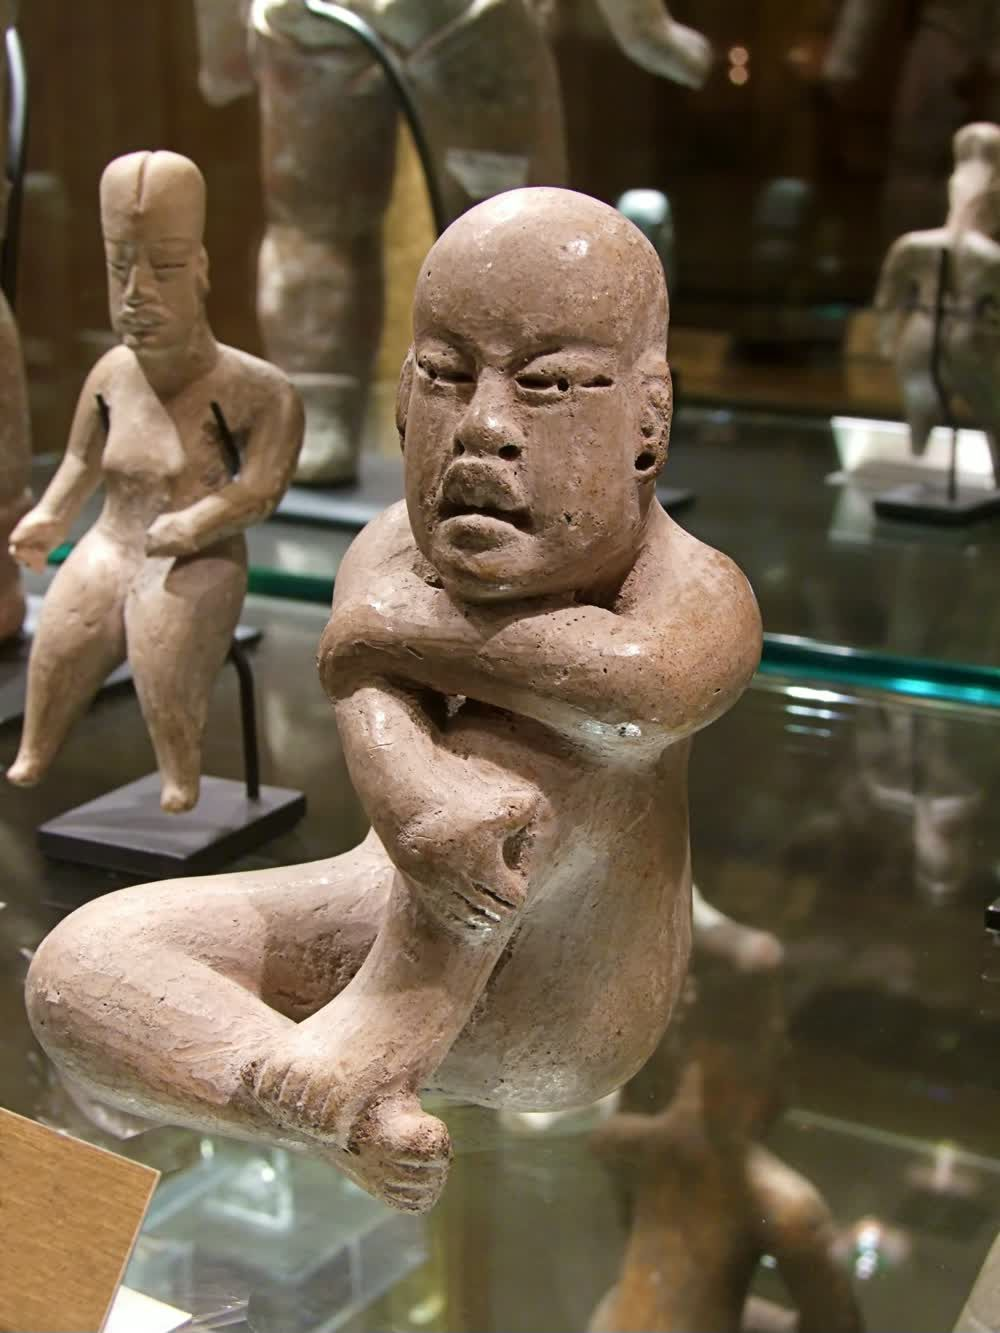 title: Naked Stone Sculptures of Old Cultures